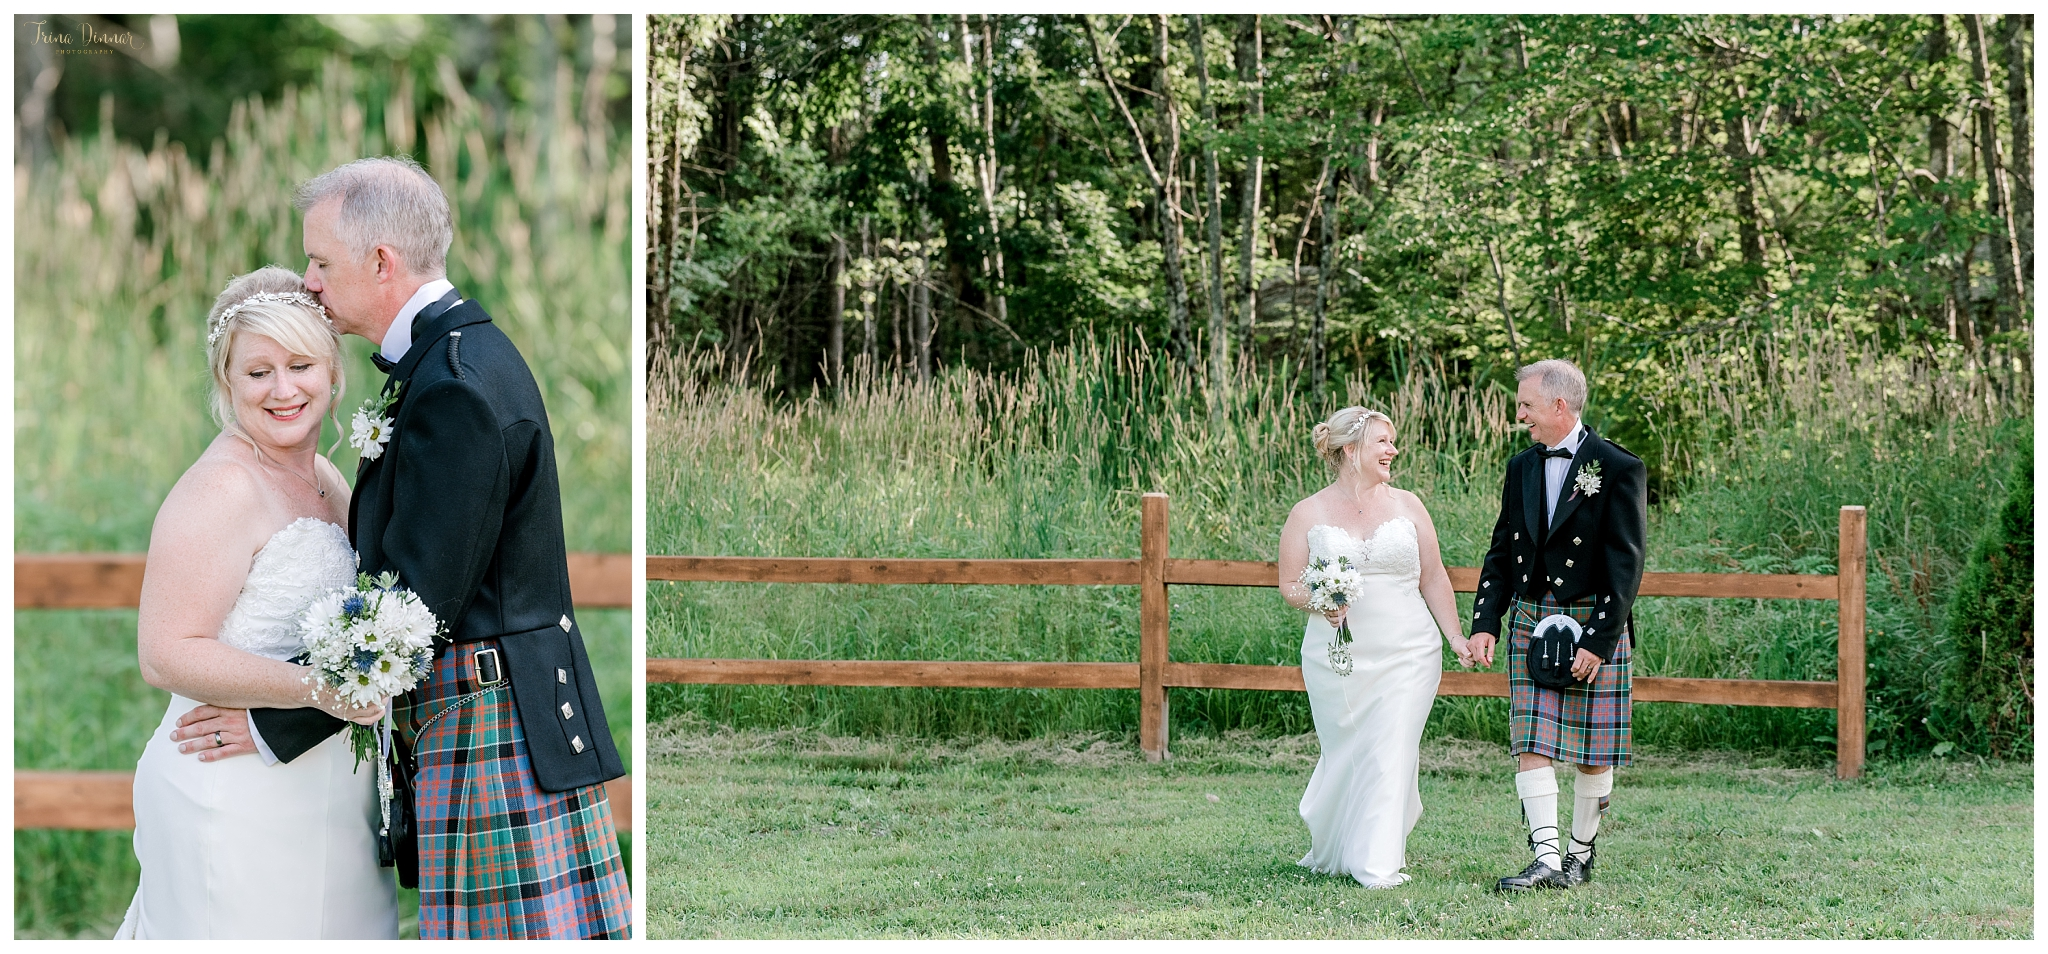 Scottish American Dayton, Maine Wedding at The Hitching Post